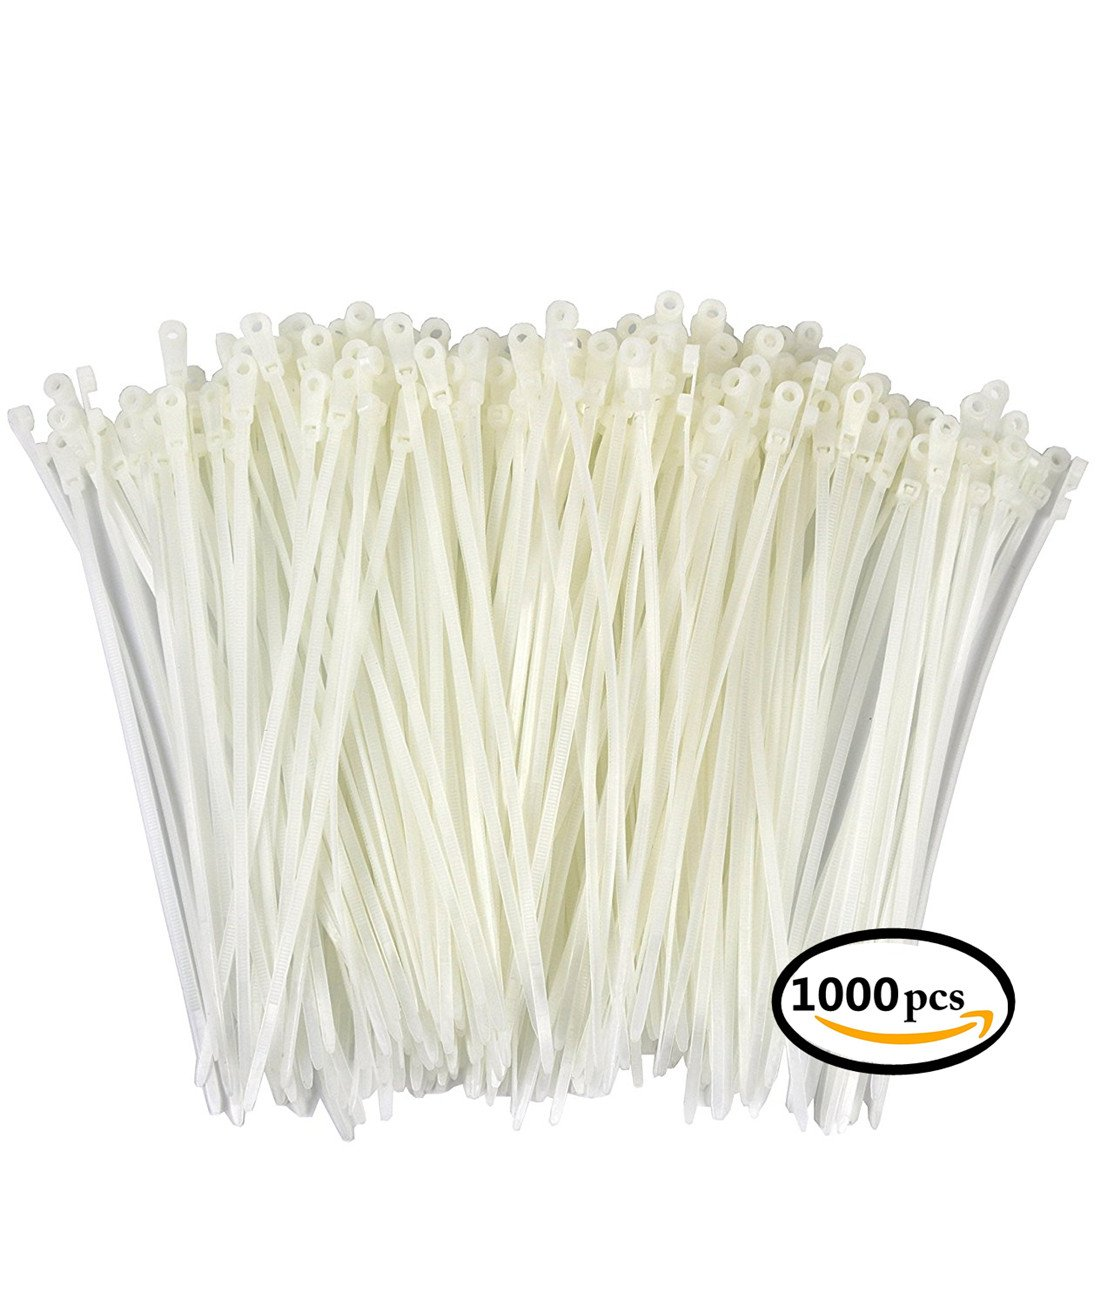 Aibily Durable TIE Nylon Cable Tie Self Locking Zip Ties Strong Cable Tie Wrap 4 Inch Wire Ties Pack of 1000 White